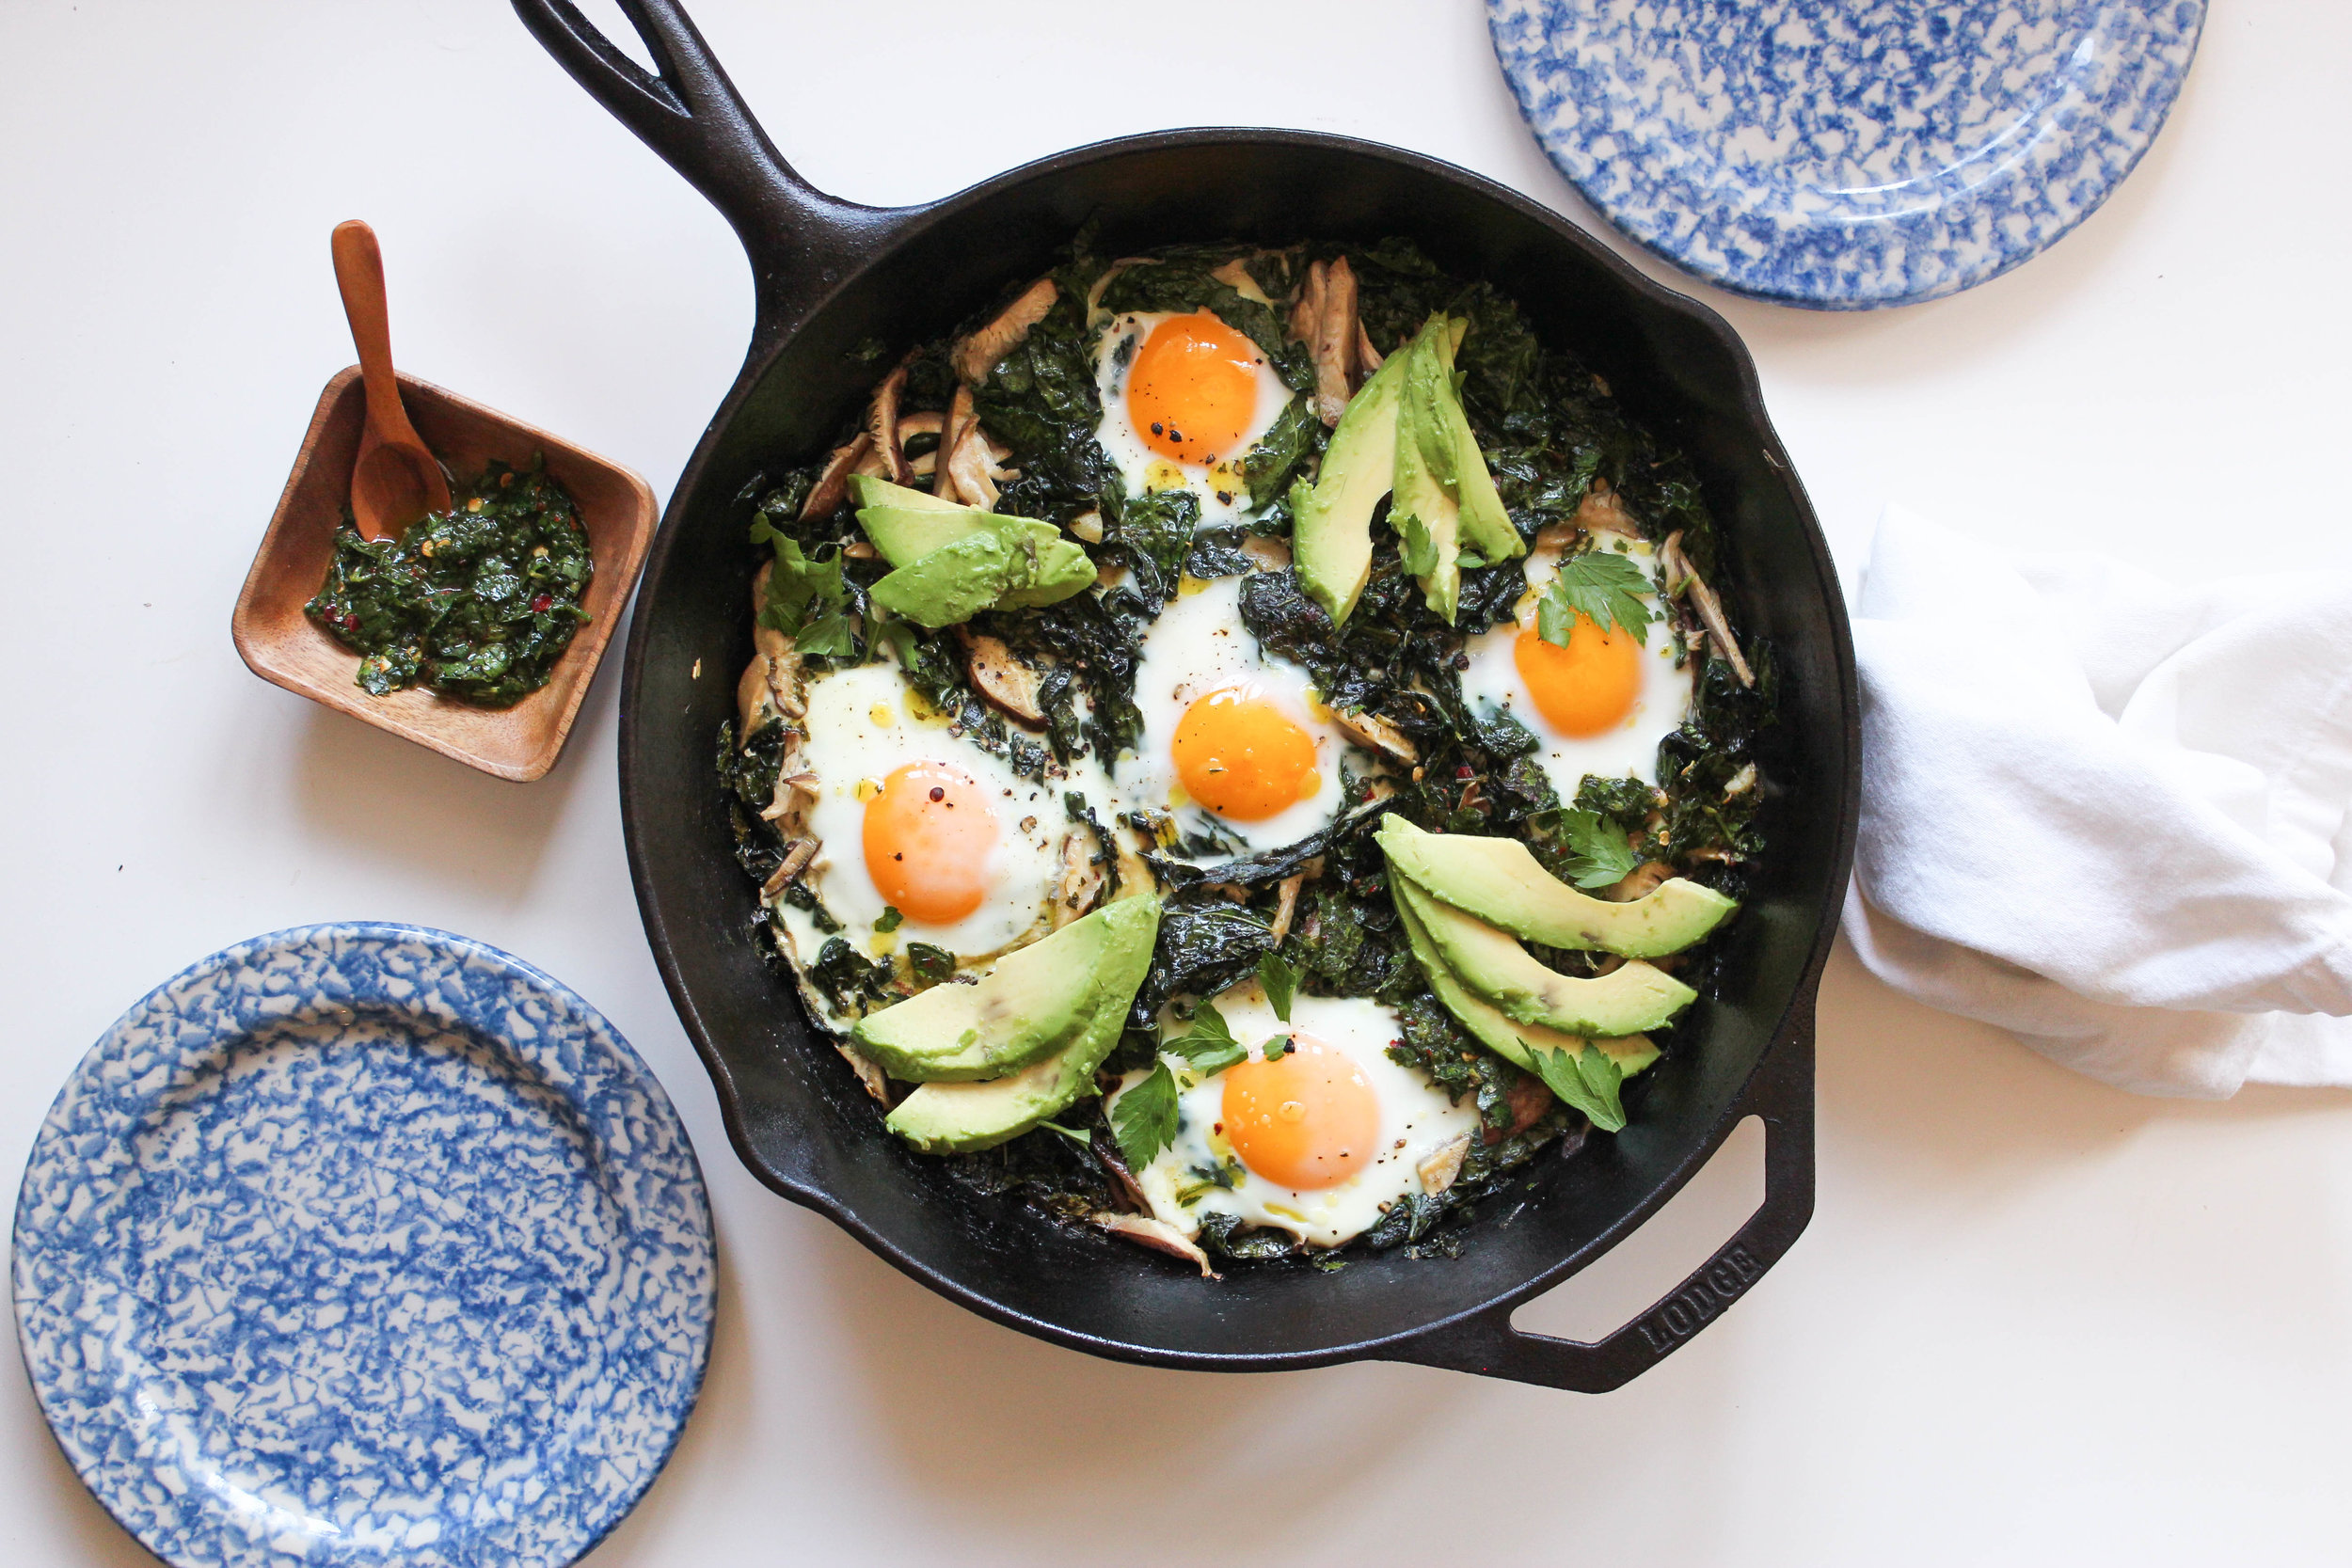 A dish inspired by my daily breakfast, this Kale, Mushroom & Chimichurri Baked Eggs dish is packed with the flavors of Spring.